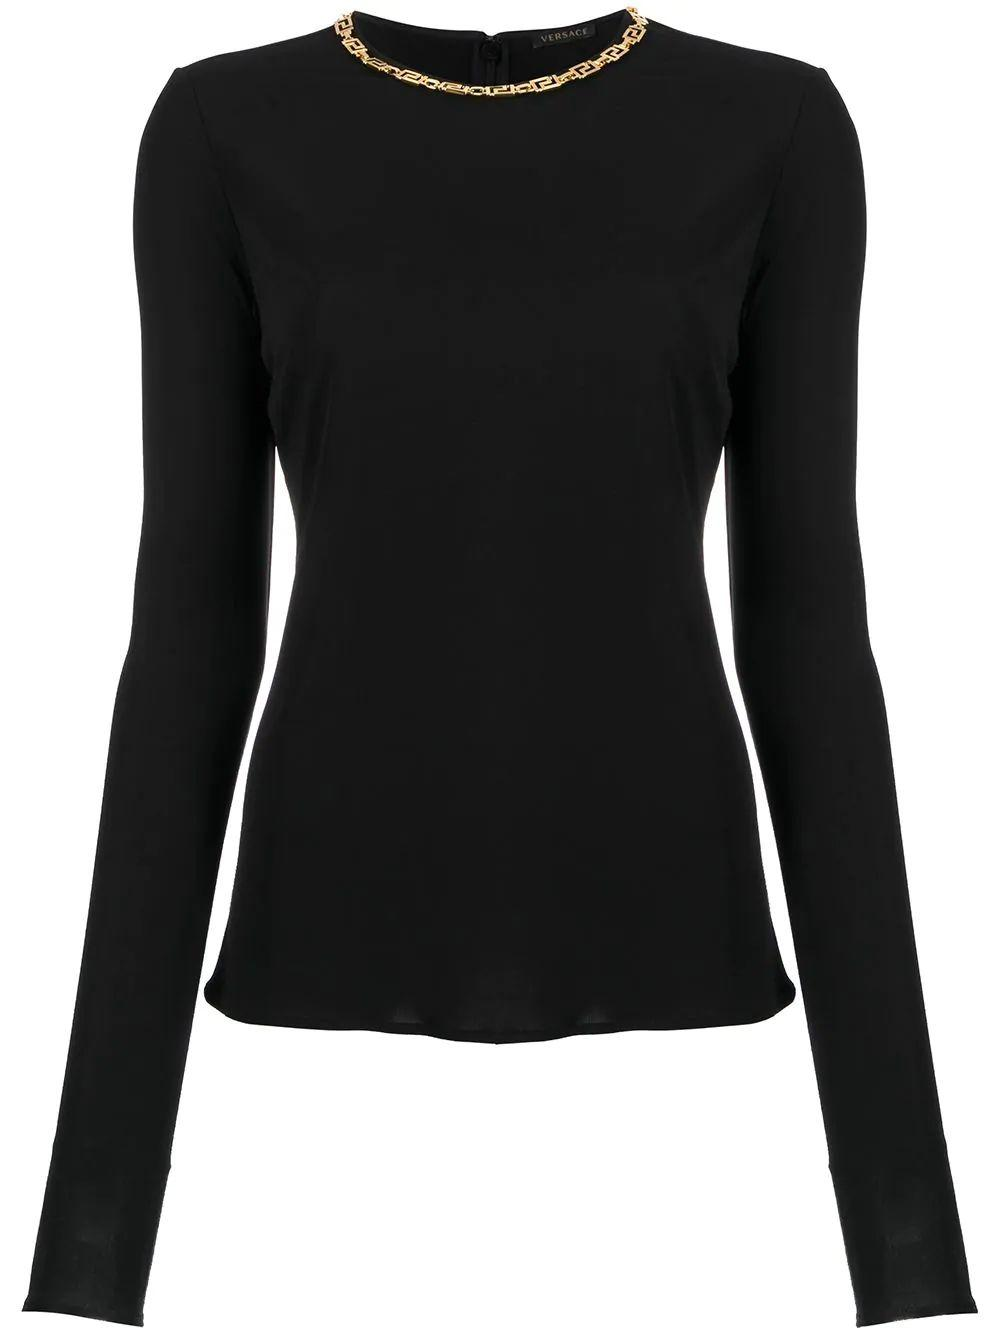 Blouse With Chain Neck Detail